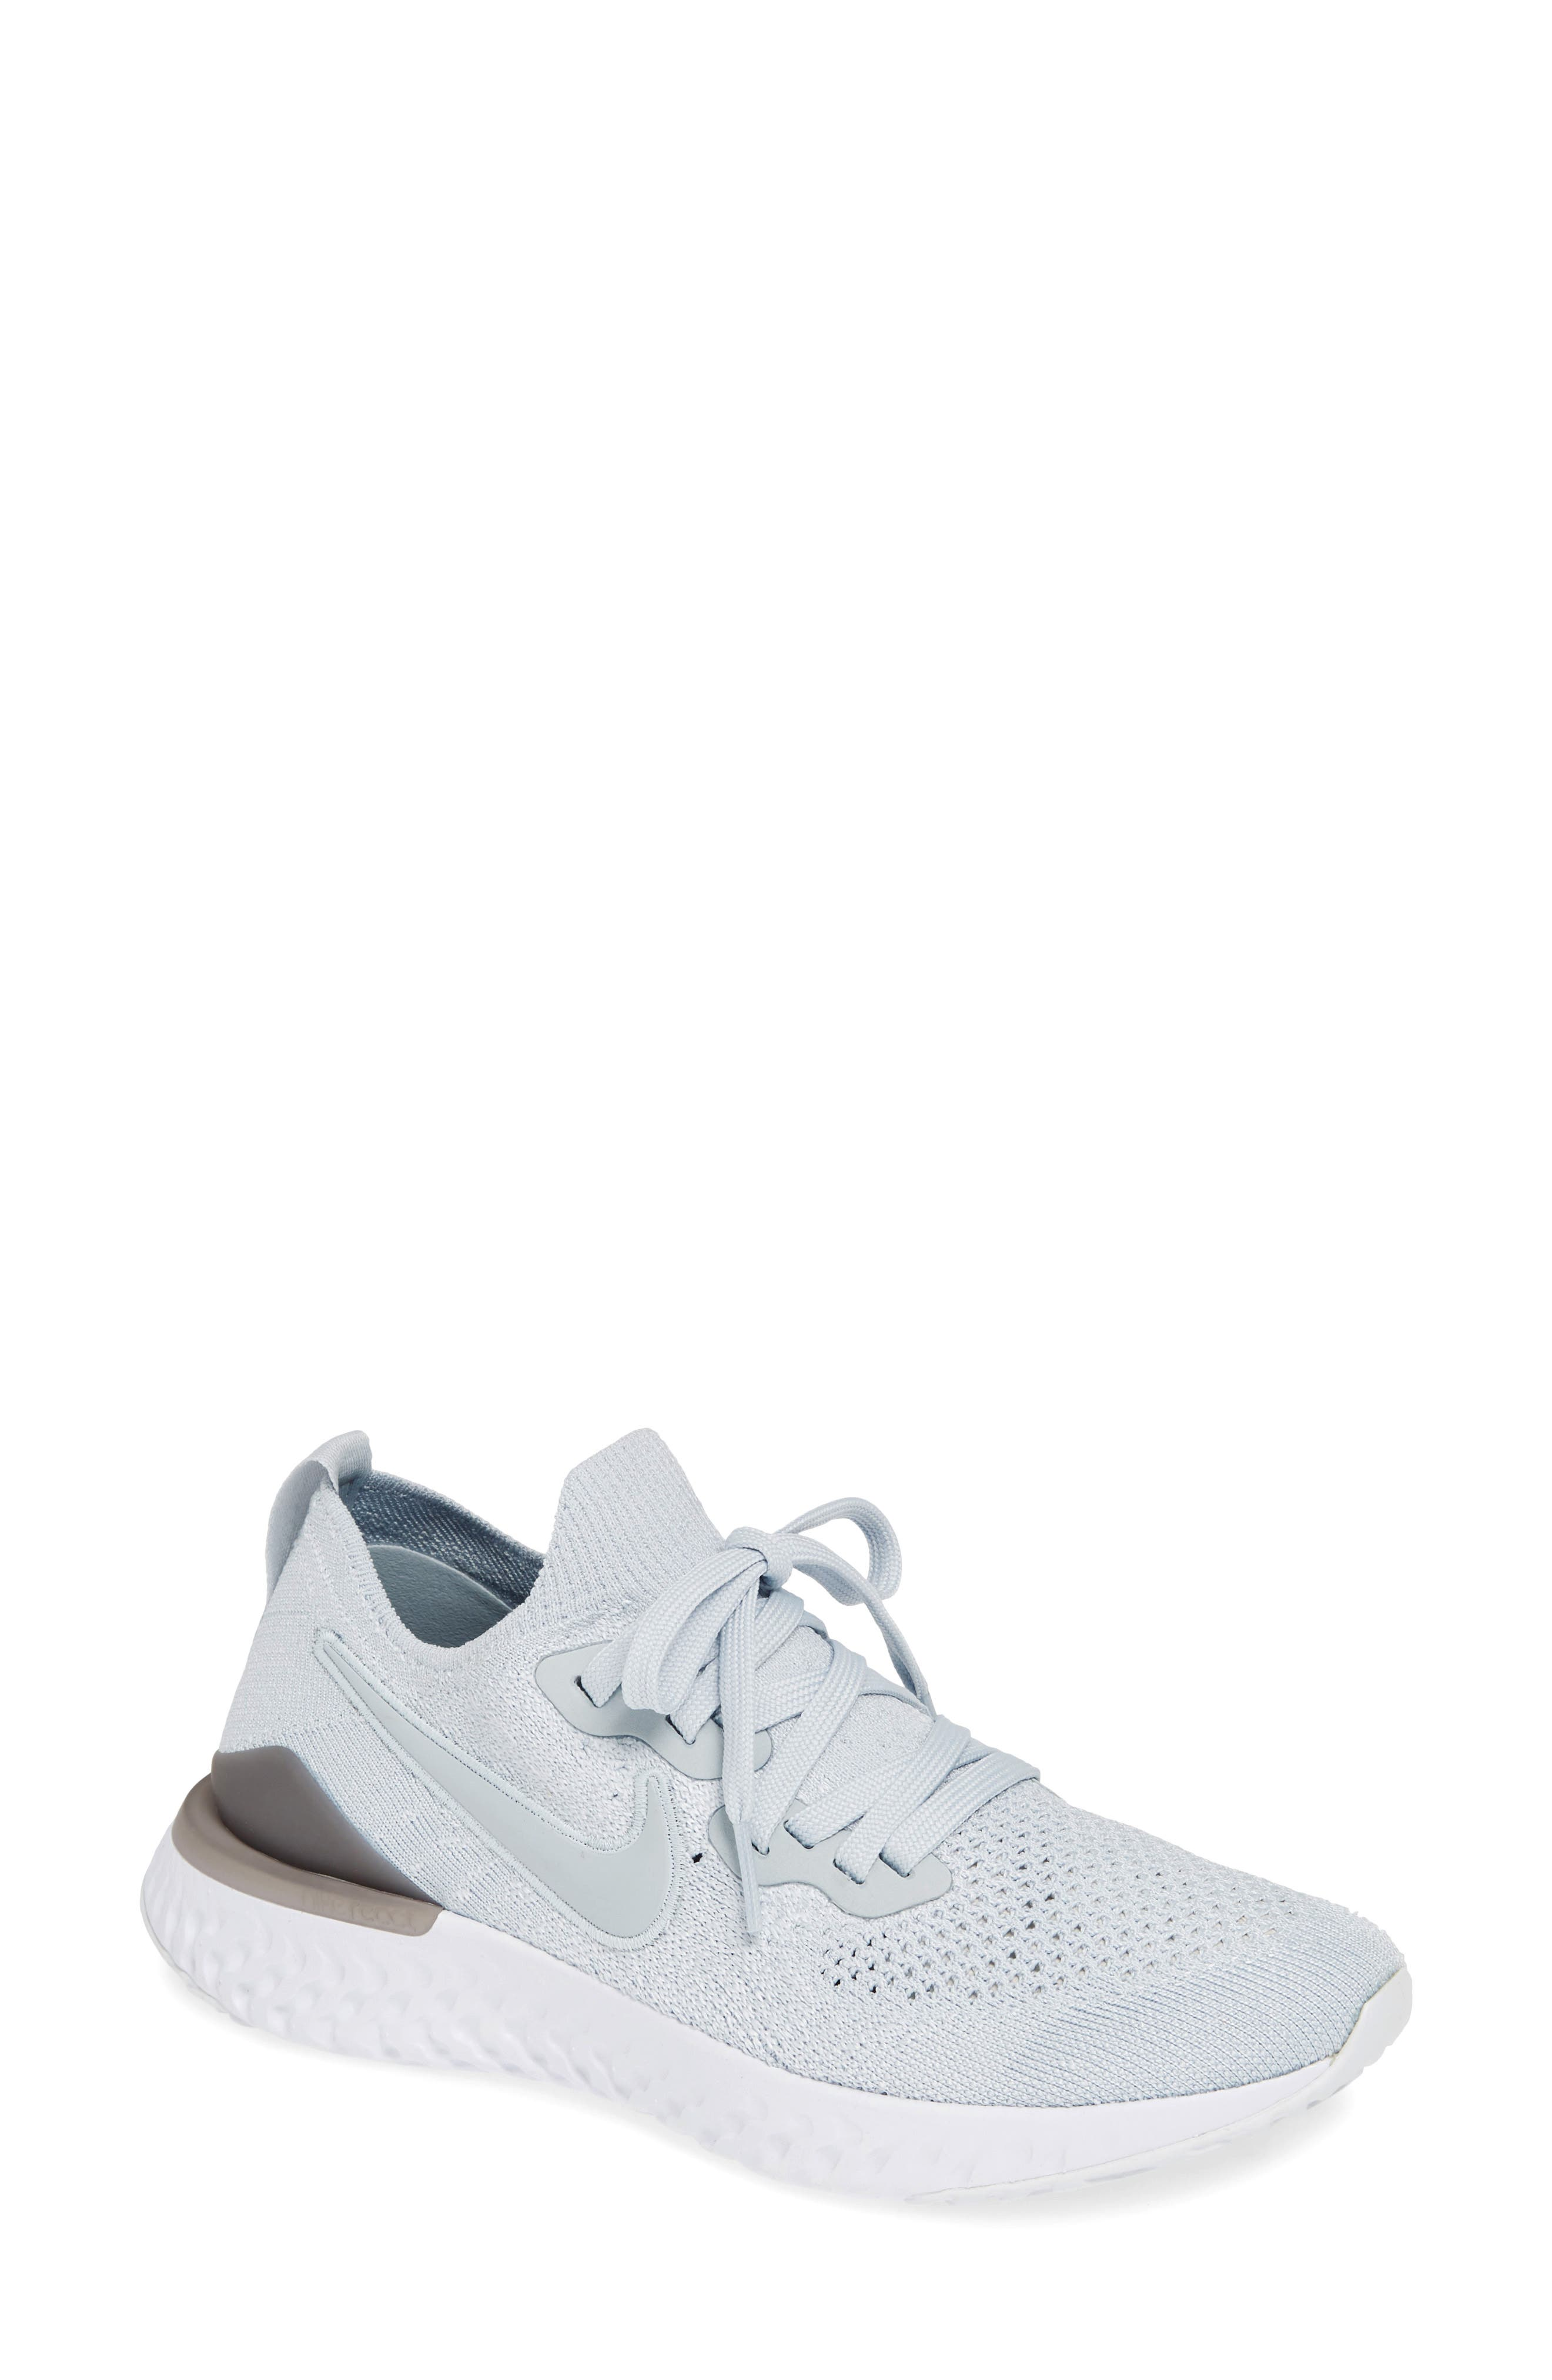 ,                             Epic React Flyknit 2 Running Shoe,                             Main thumbnail 1, color,                             PURE PLATINUM/ WOLF GREY